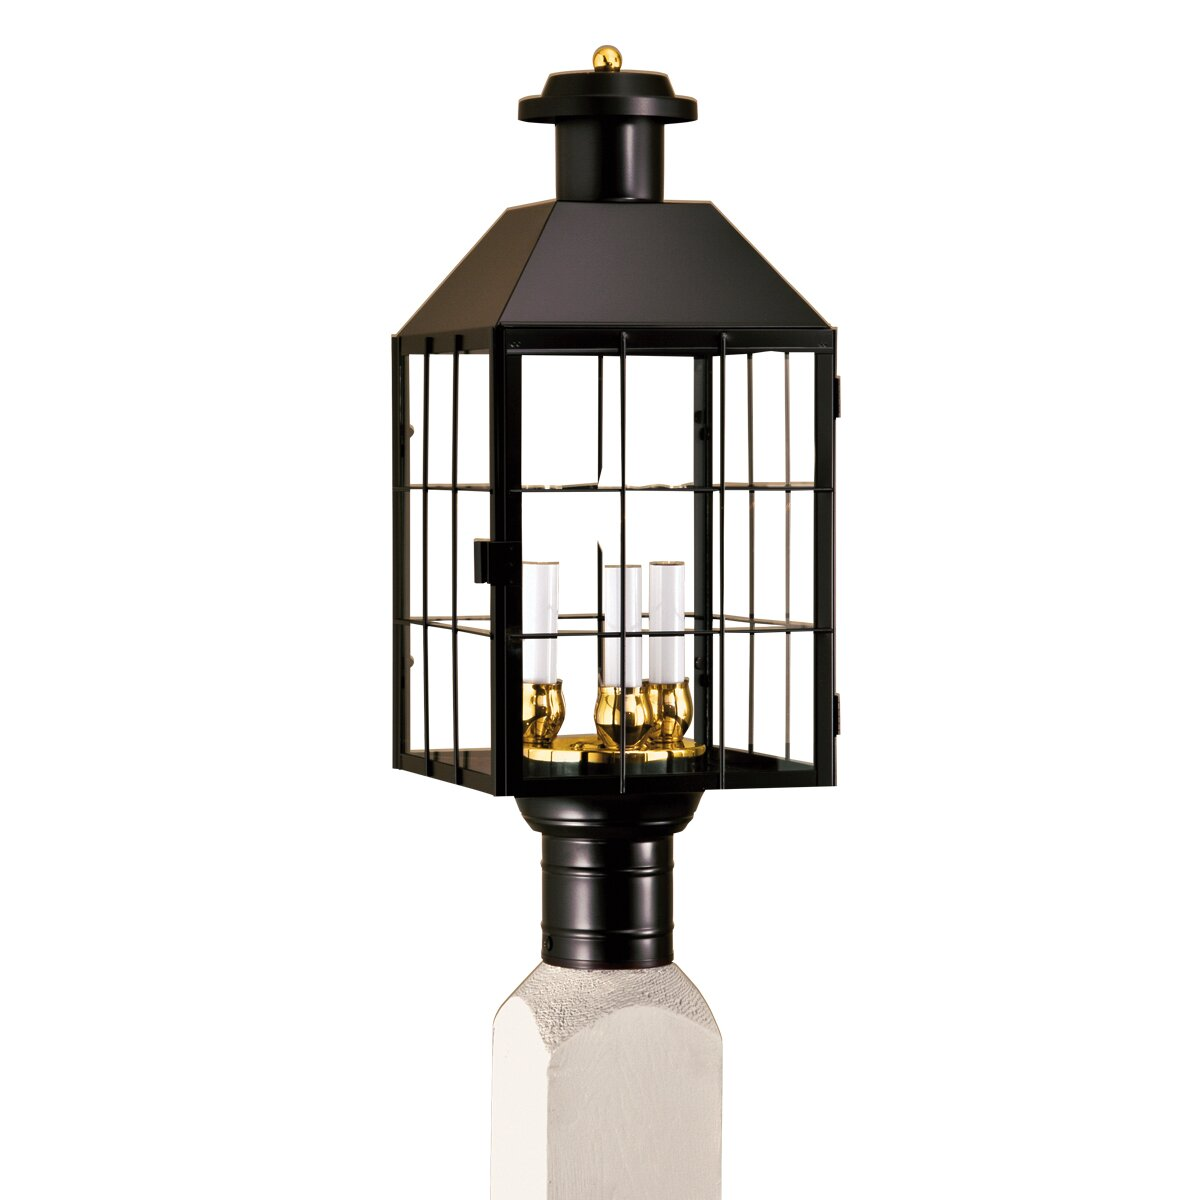 Outdoor Post Light Bulbs: Norwell Lighting American Heritage 3 Light Outdoor Post